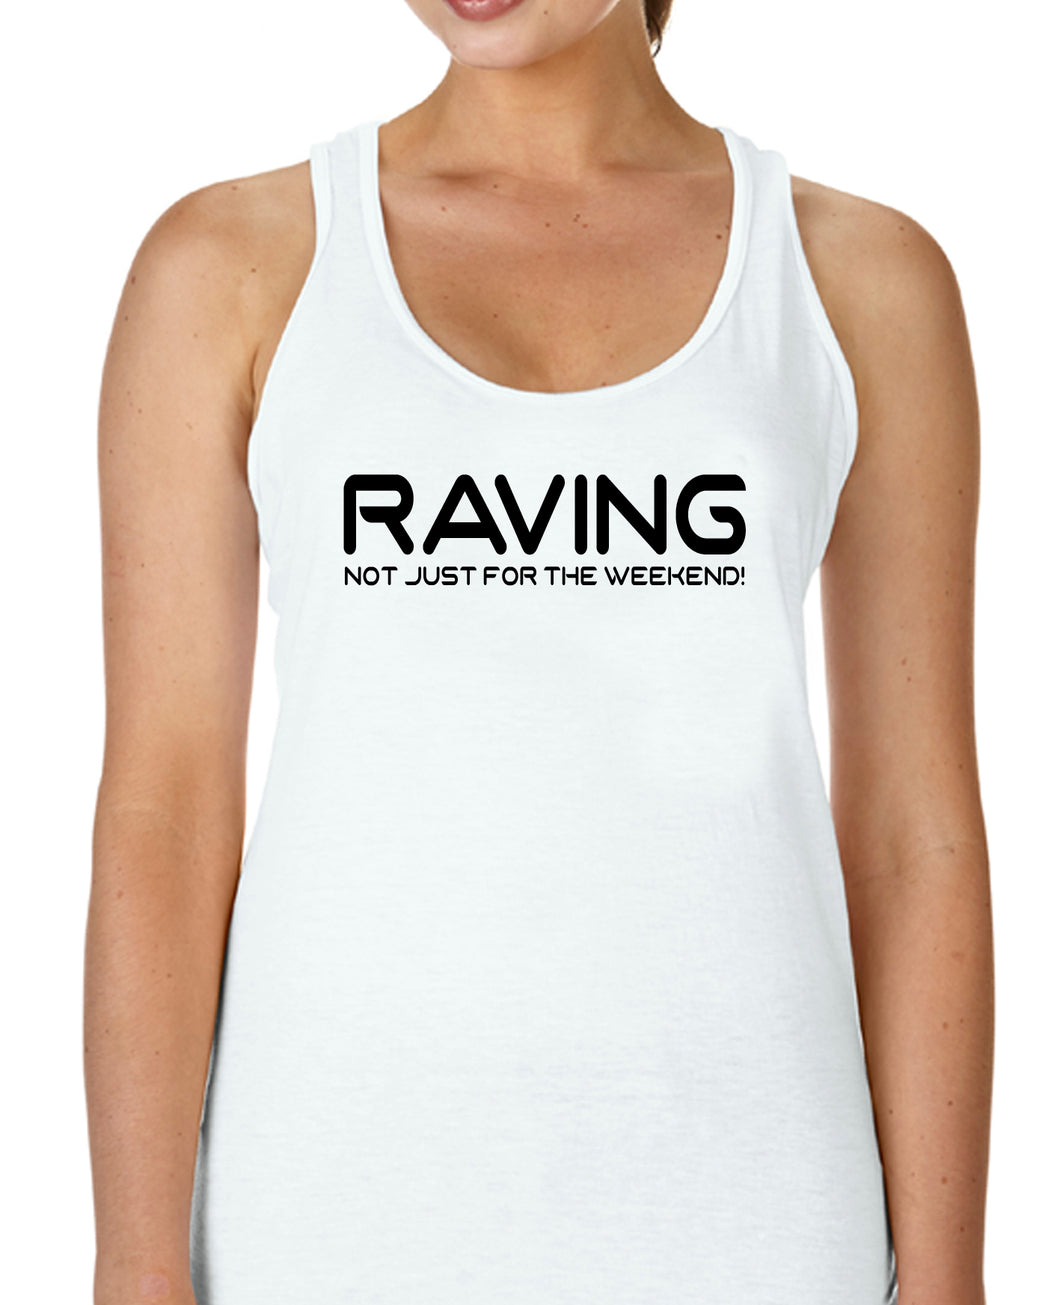 RAVING NOT JUST FOR THE WEEKEND! - Racerback - SoreTodayStrongTomorrow